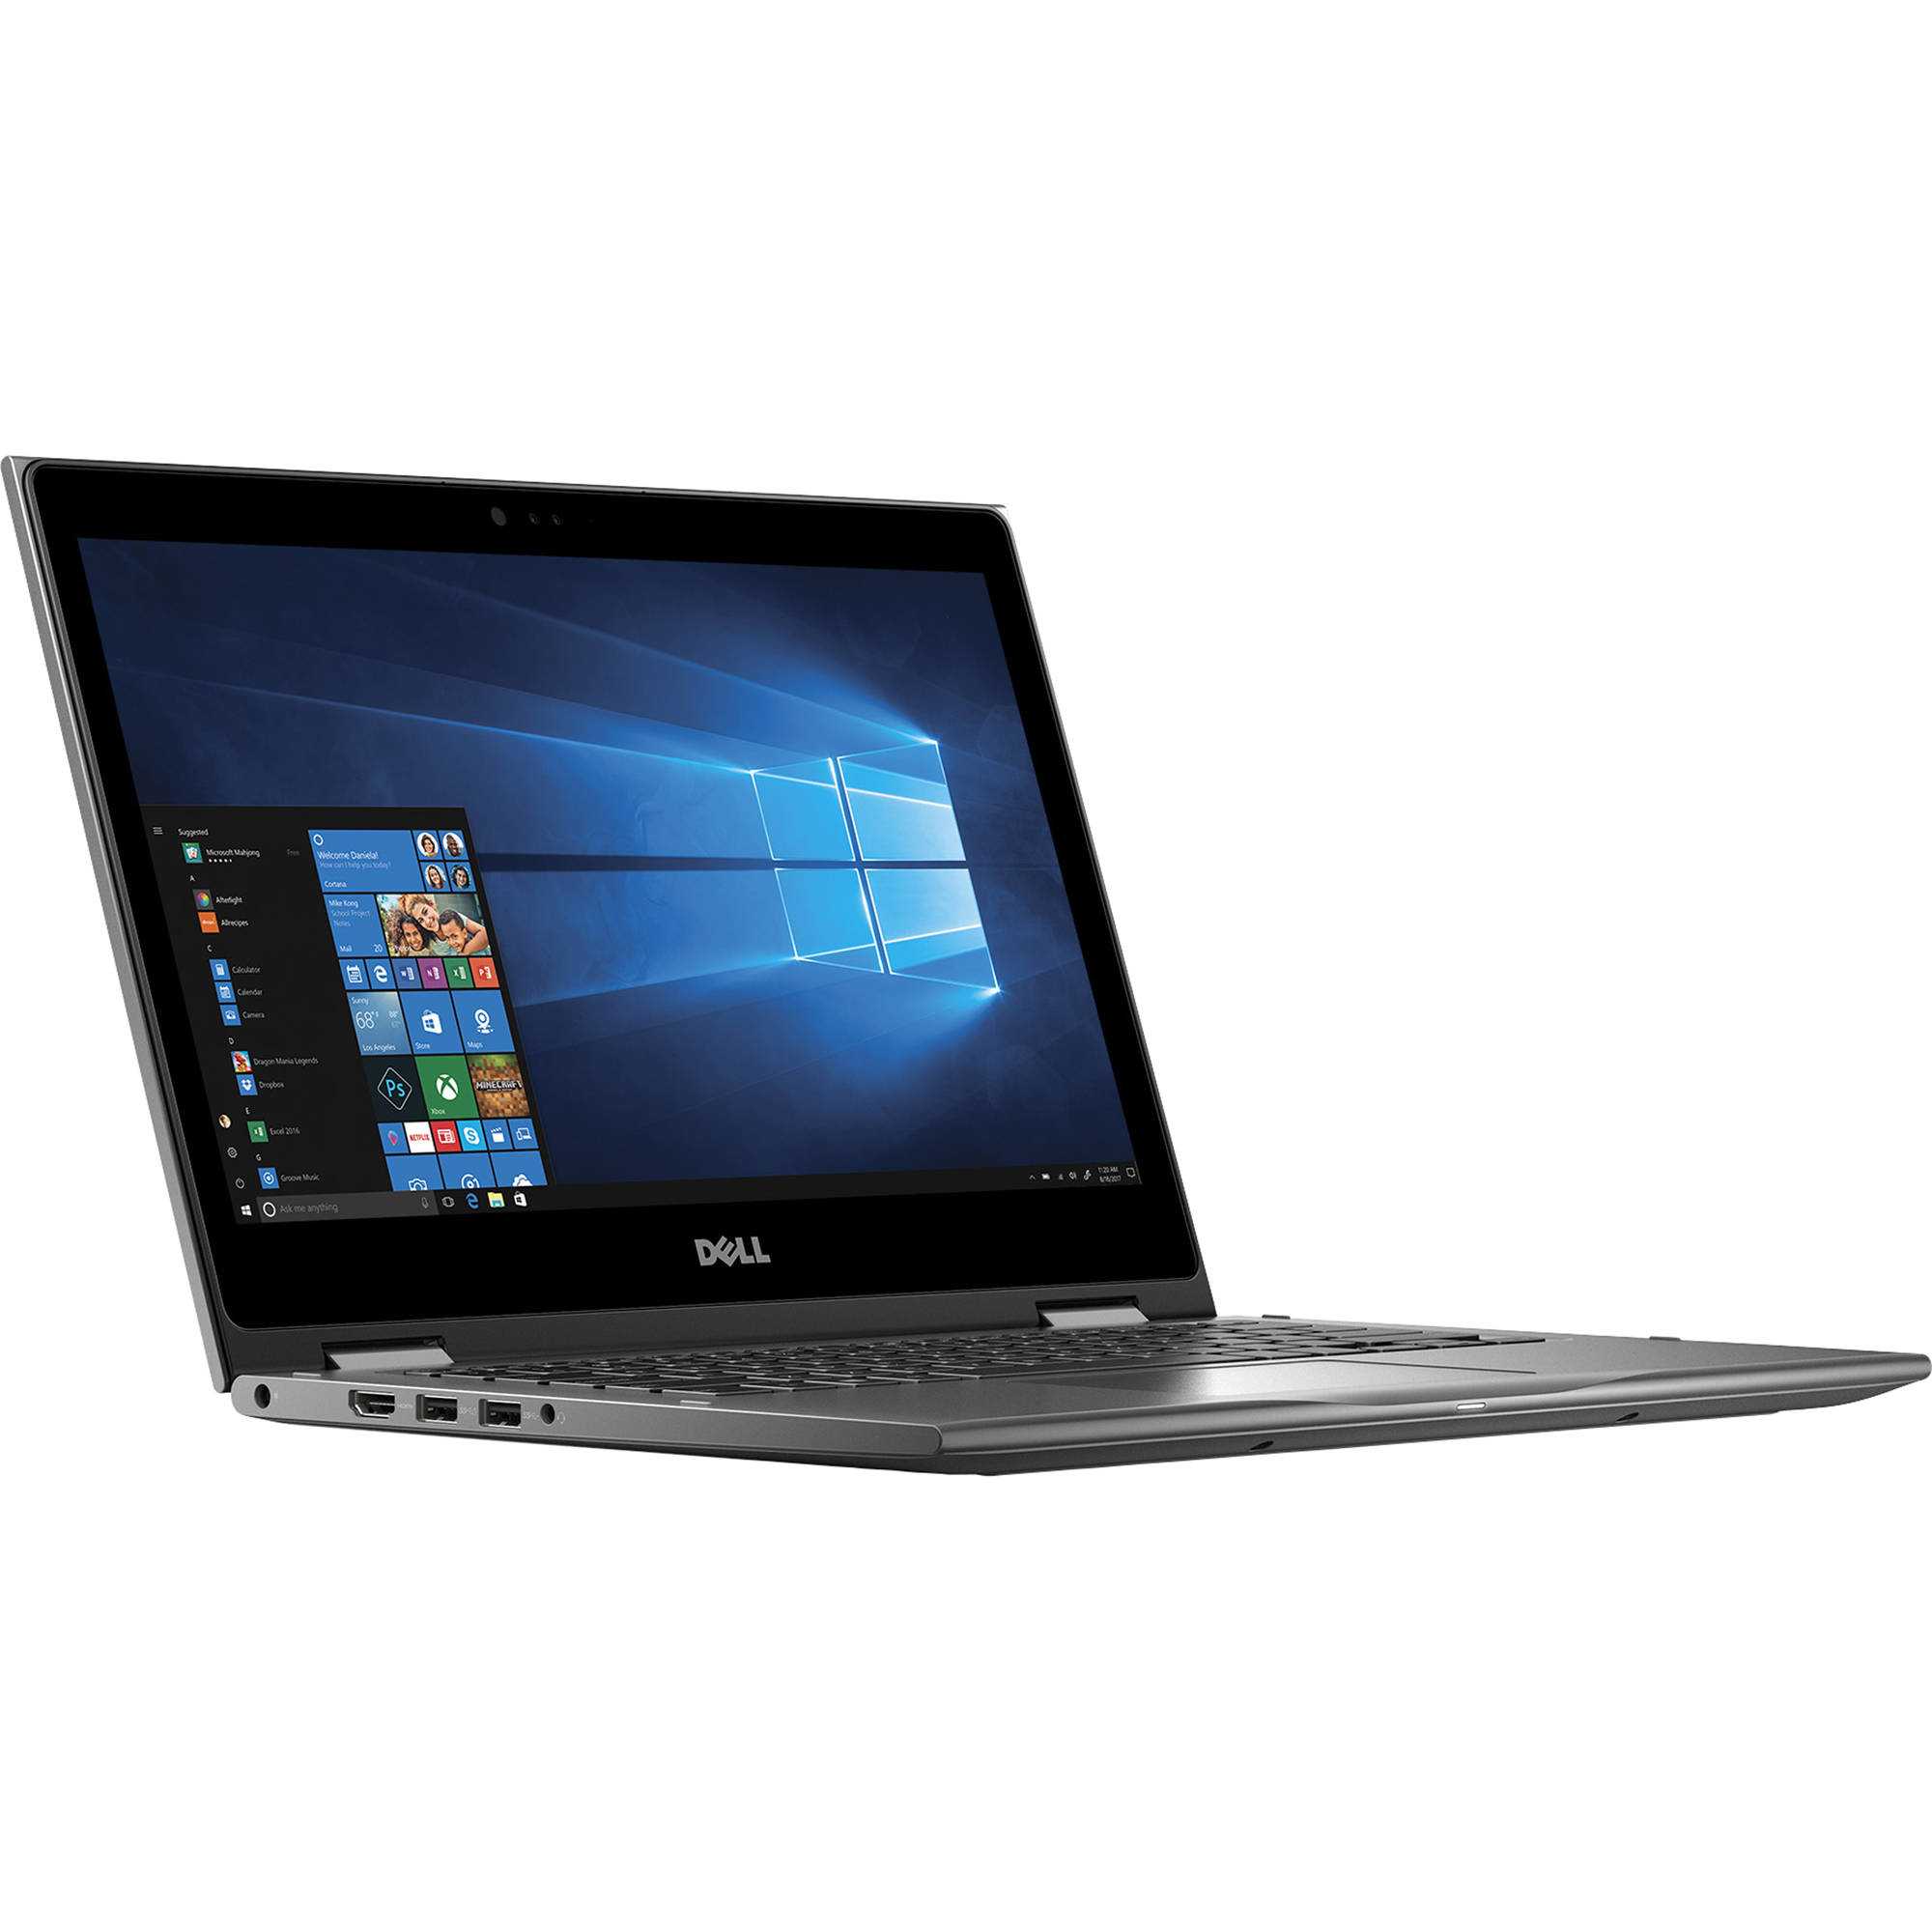 Dell Inspiron 13 5000 Slow Performance issue Fixed - infofuge